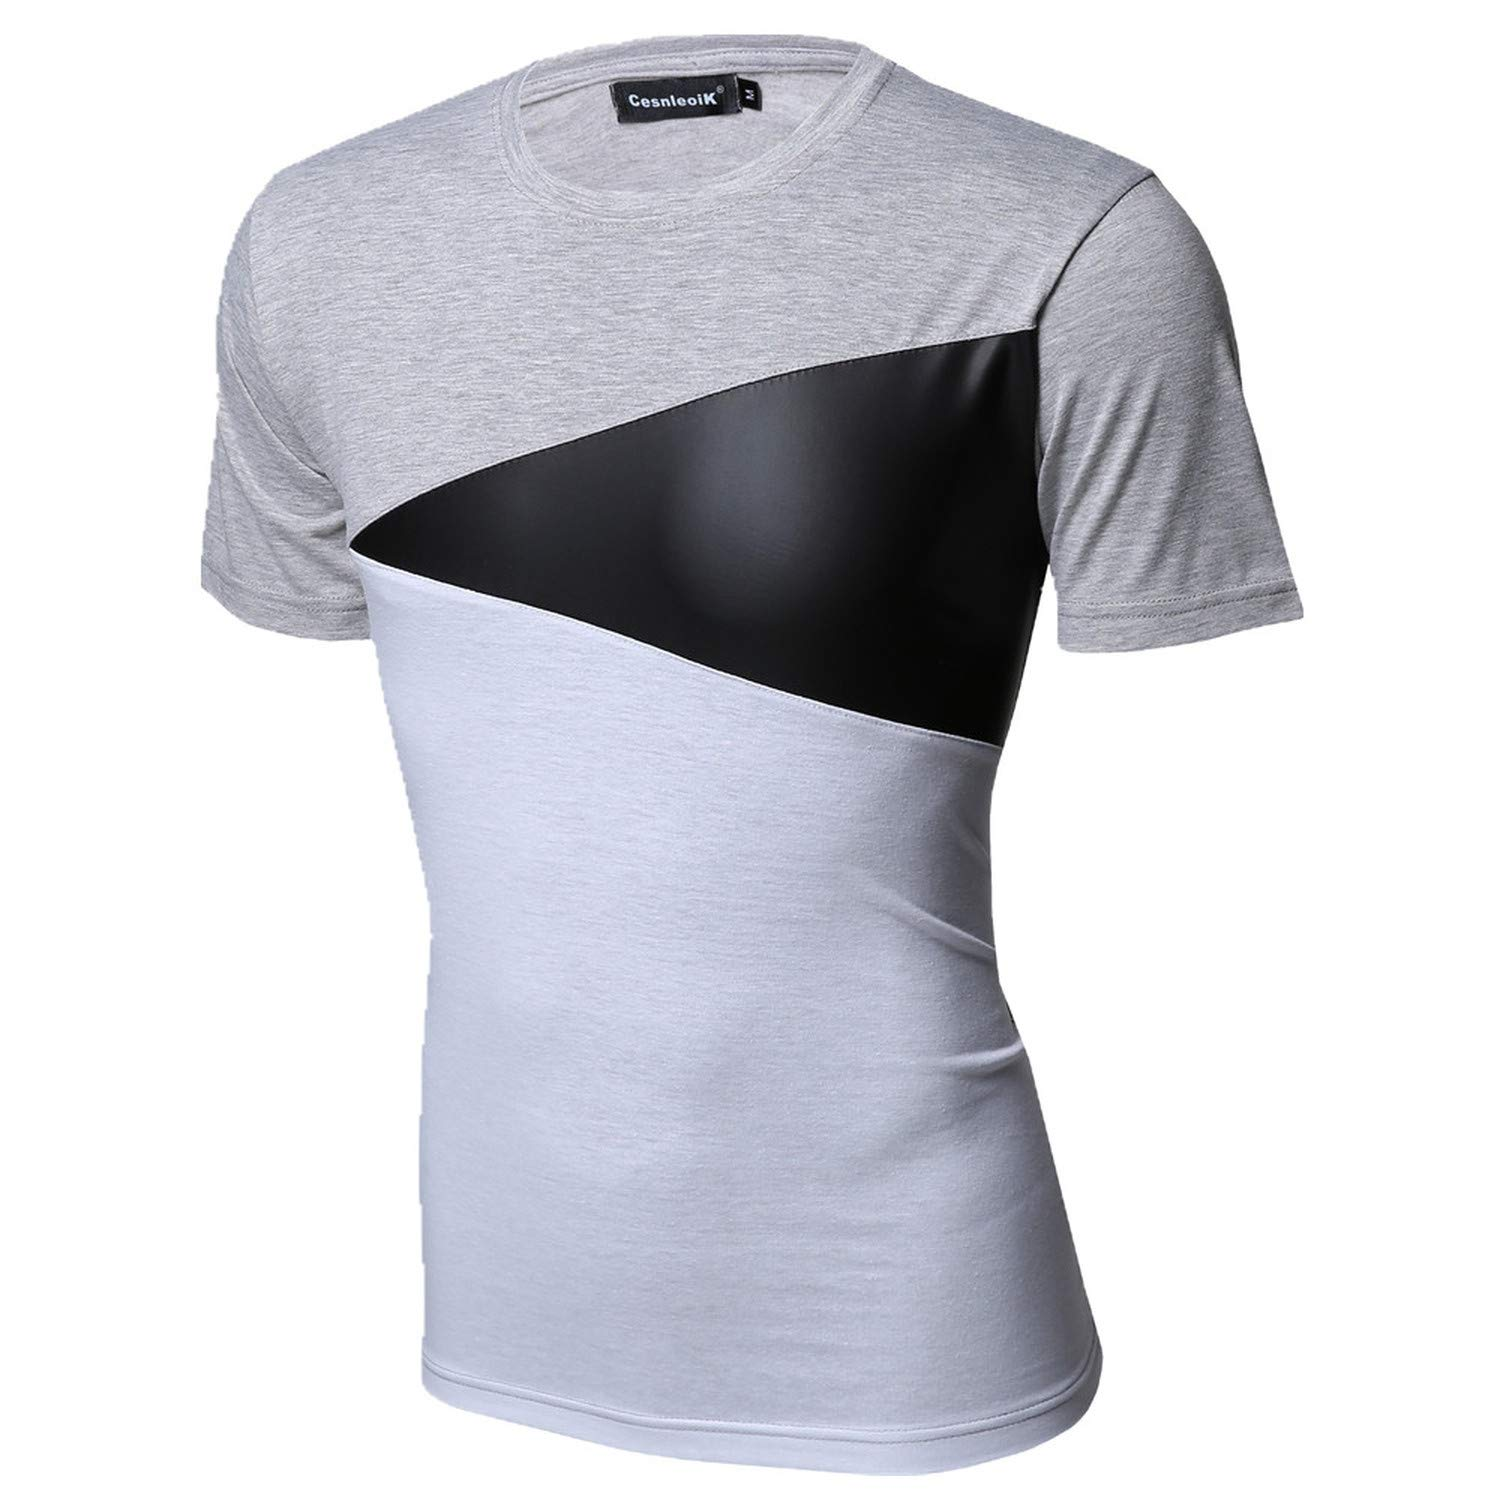 Mao YiE M XXL Pu Leather T Shirt Men Splice Short Sleeve T Shirt Fashion Cotton Casual O Neck Hip Hop Mens Tops Tee